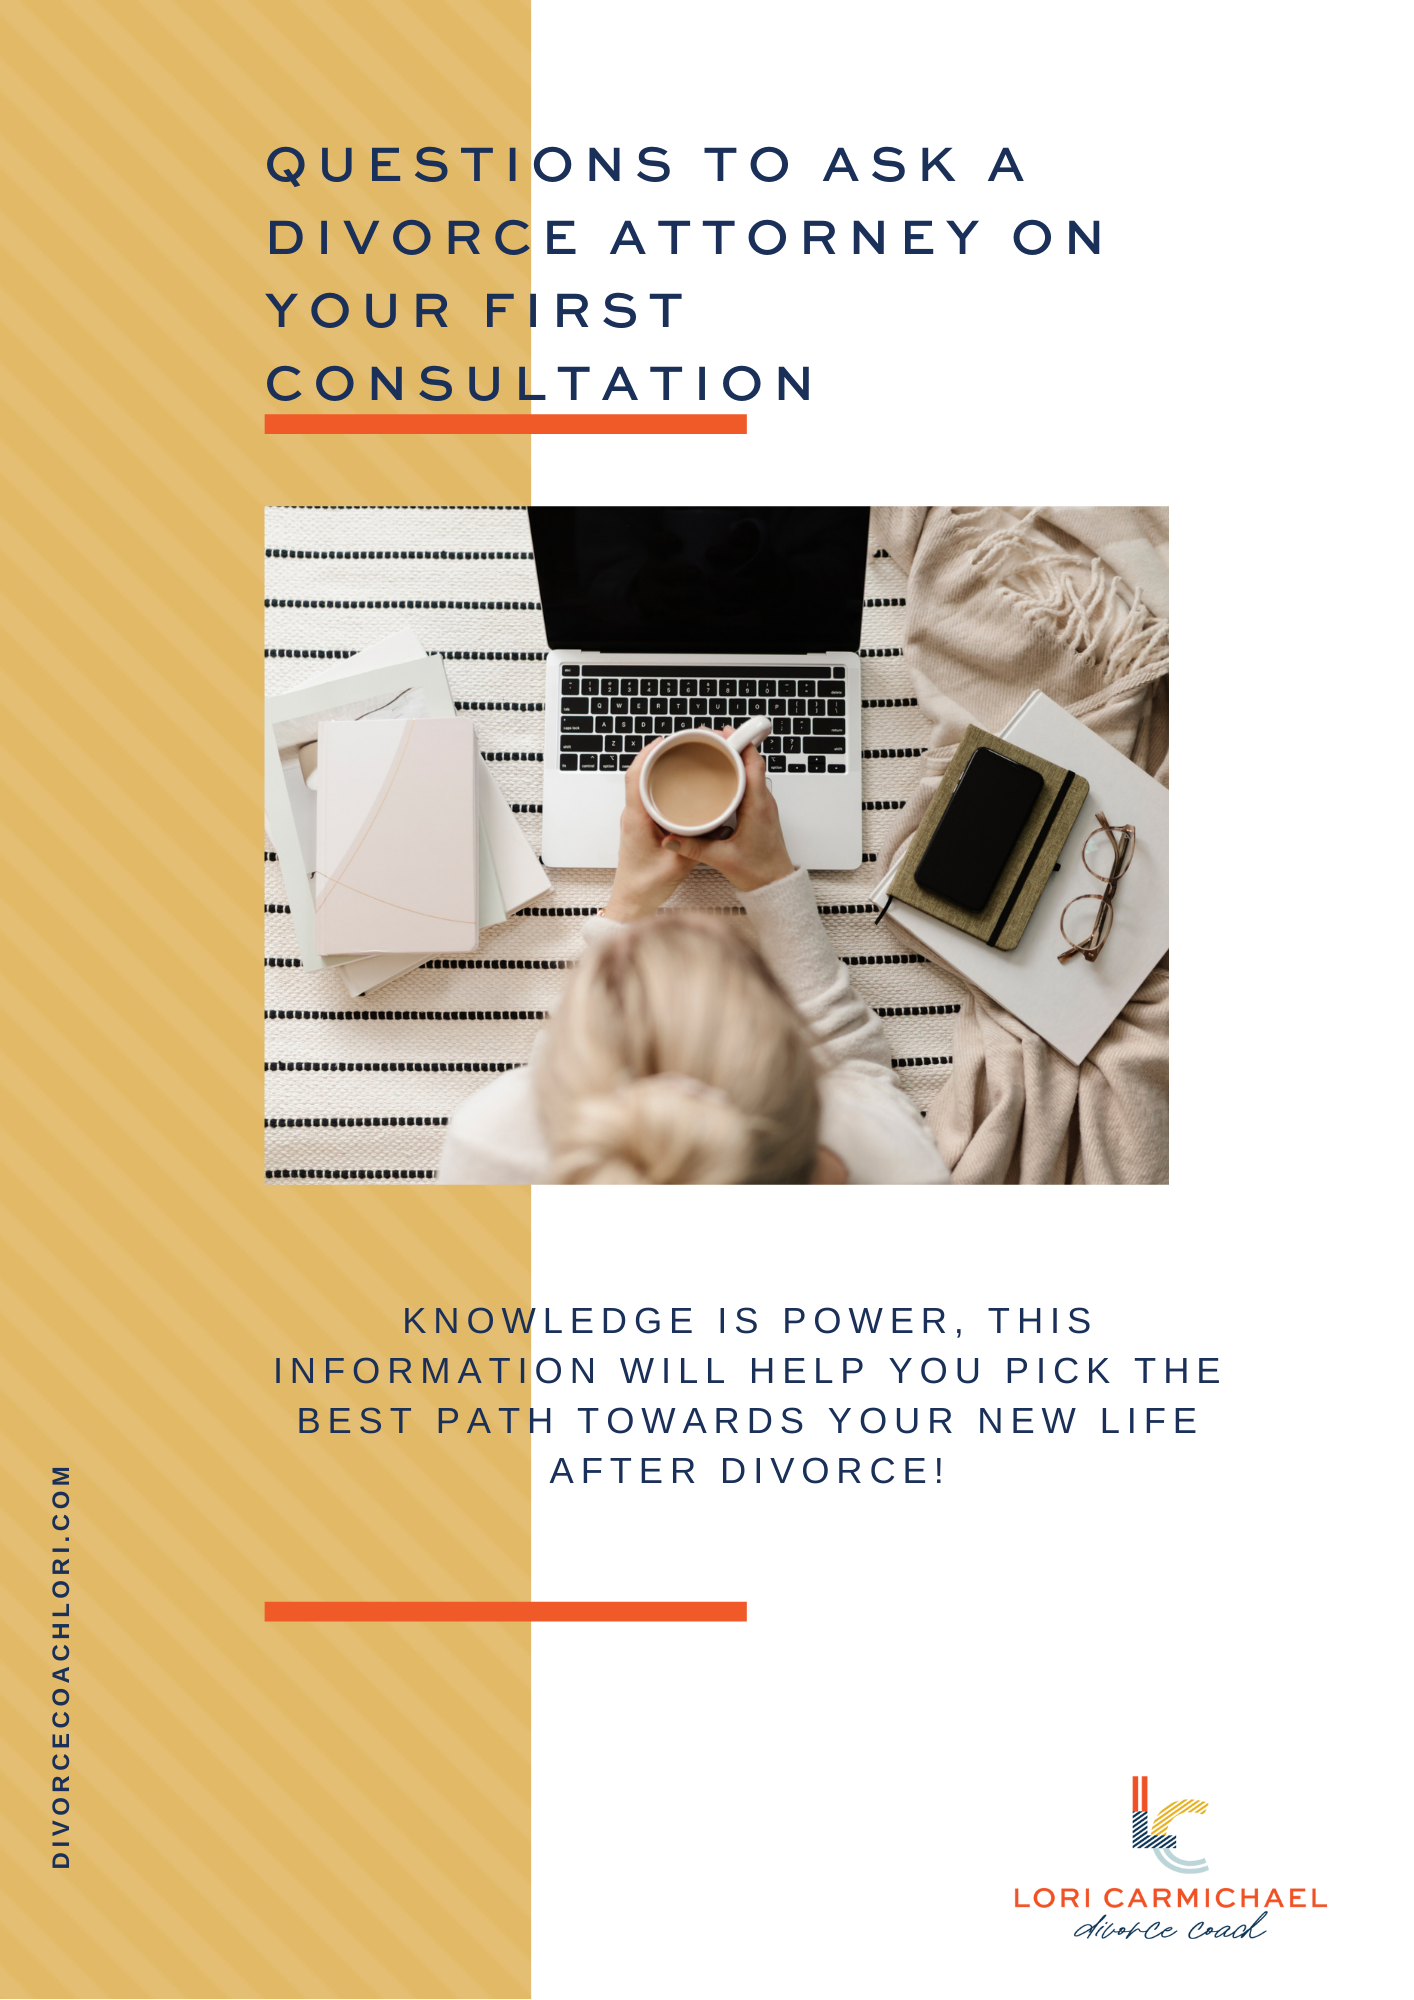 Questions to ask a divorce attorney on your First consultation.v2